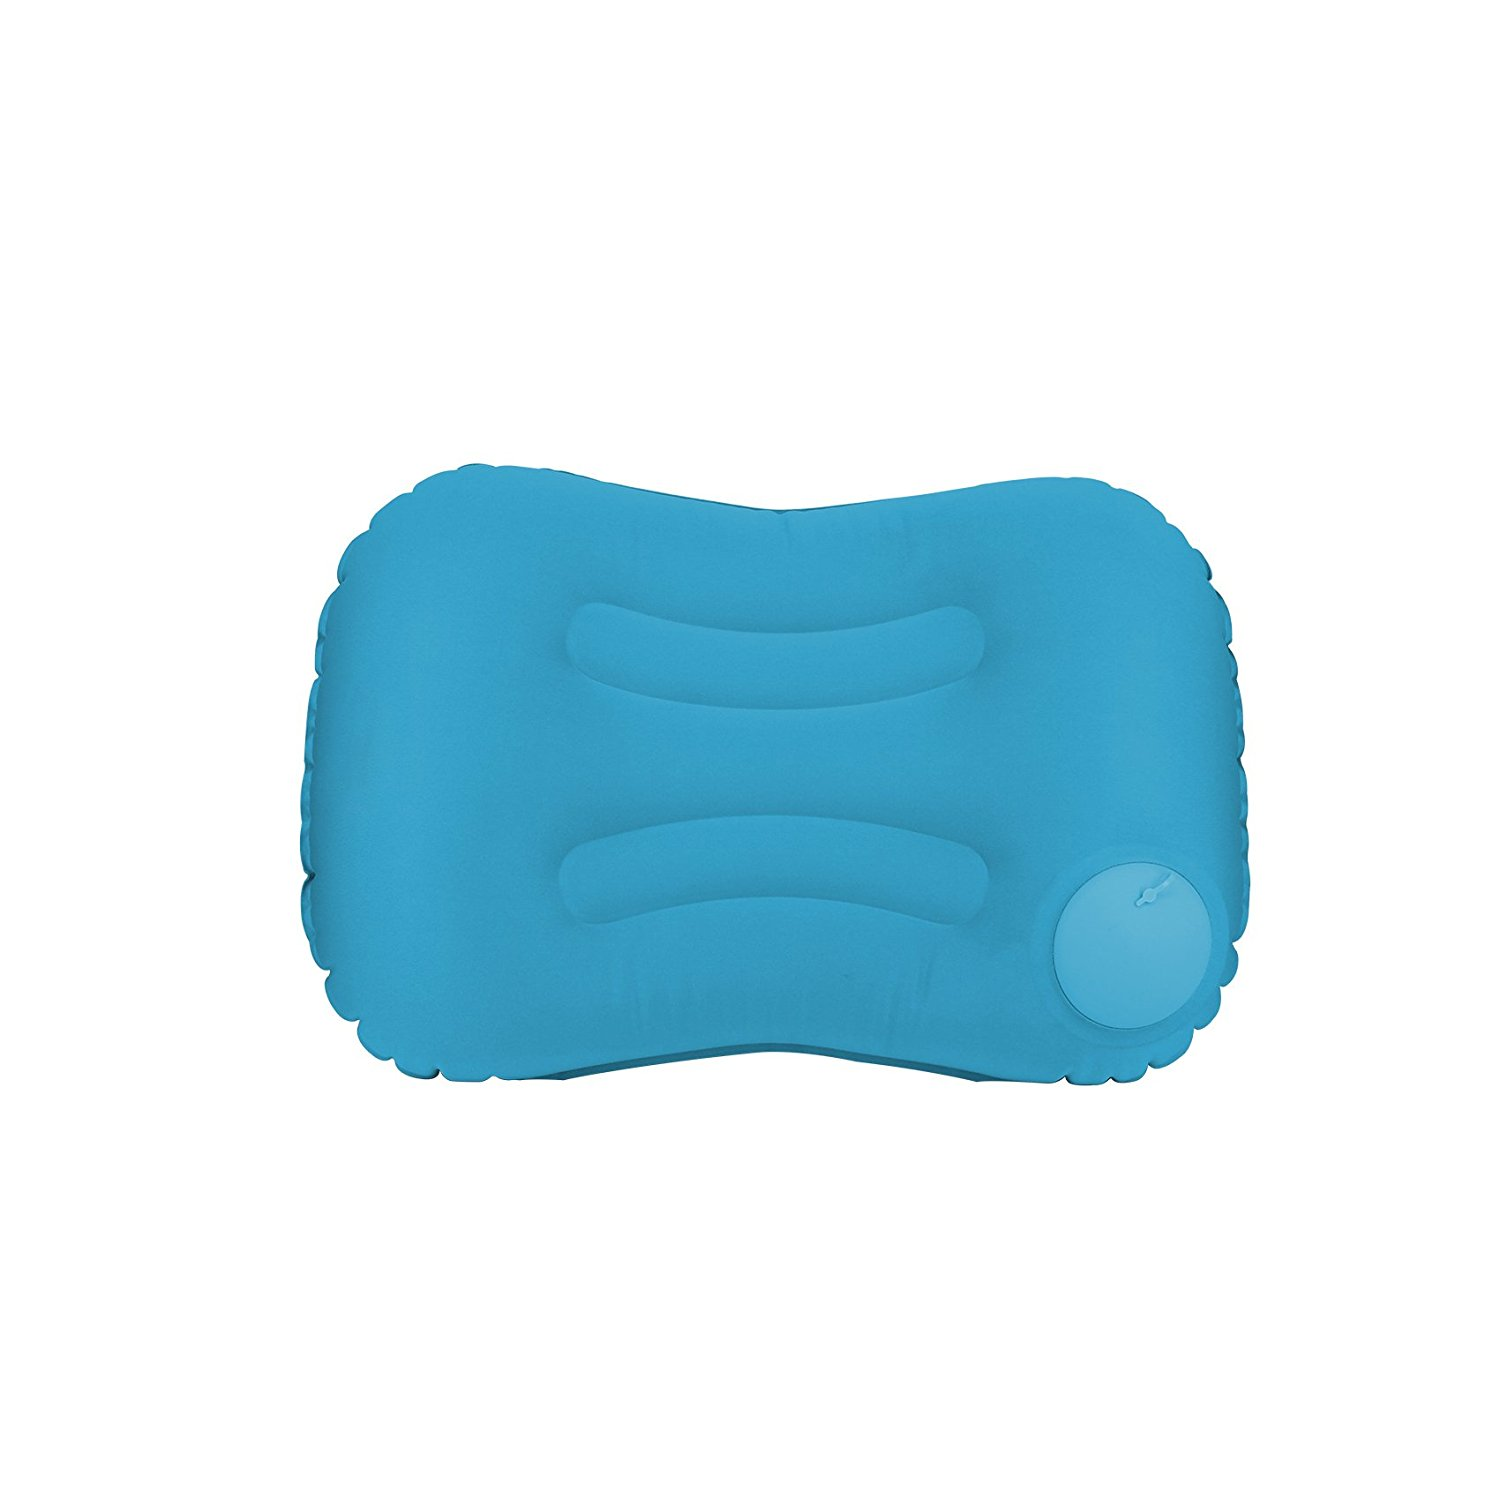 Inflatable Camping Pillow-Push Button Compressible Air Pillow, Compact and Comfortable for Outdoor Trips, Backpacking, Hiking, Travel, Beach, Airplane, Train, Car